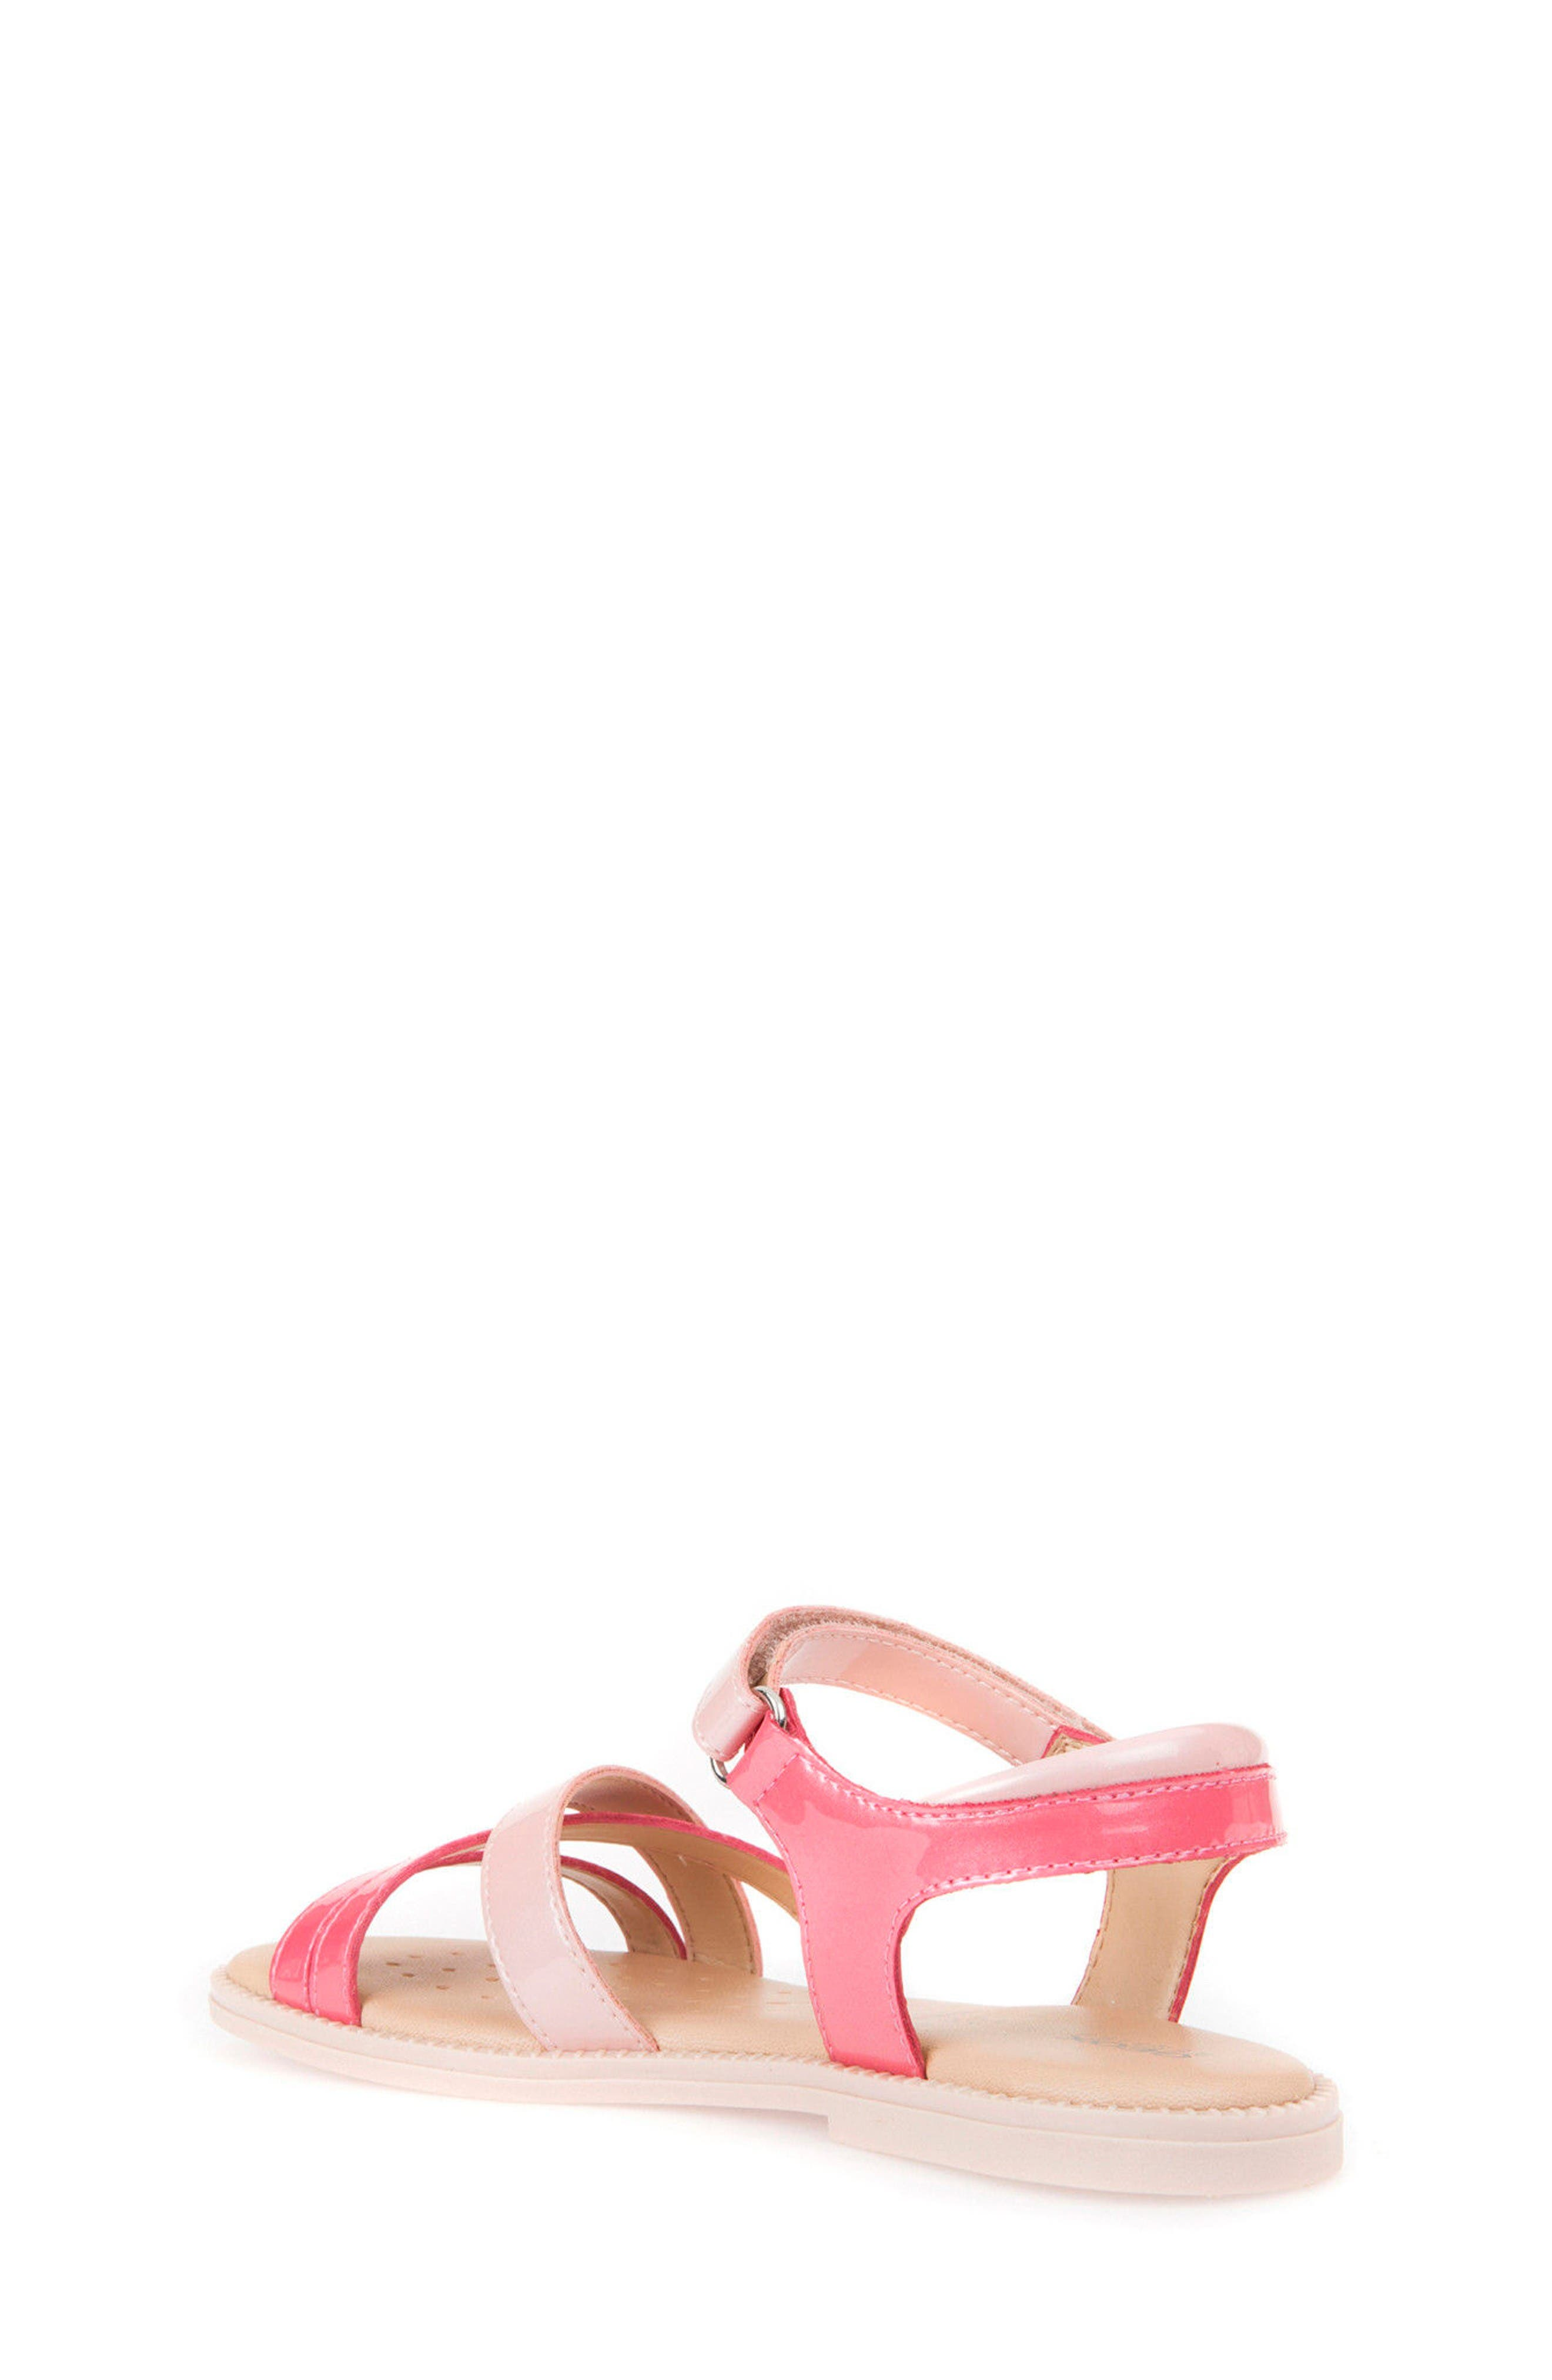 Karly Girl Sandal,                             Alternate thumbnail 2, color,                             Light Coral/ Rose